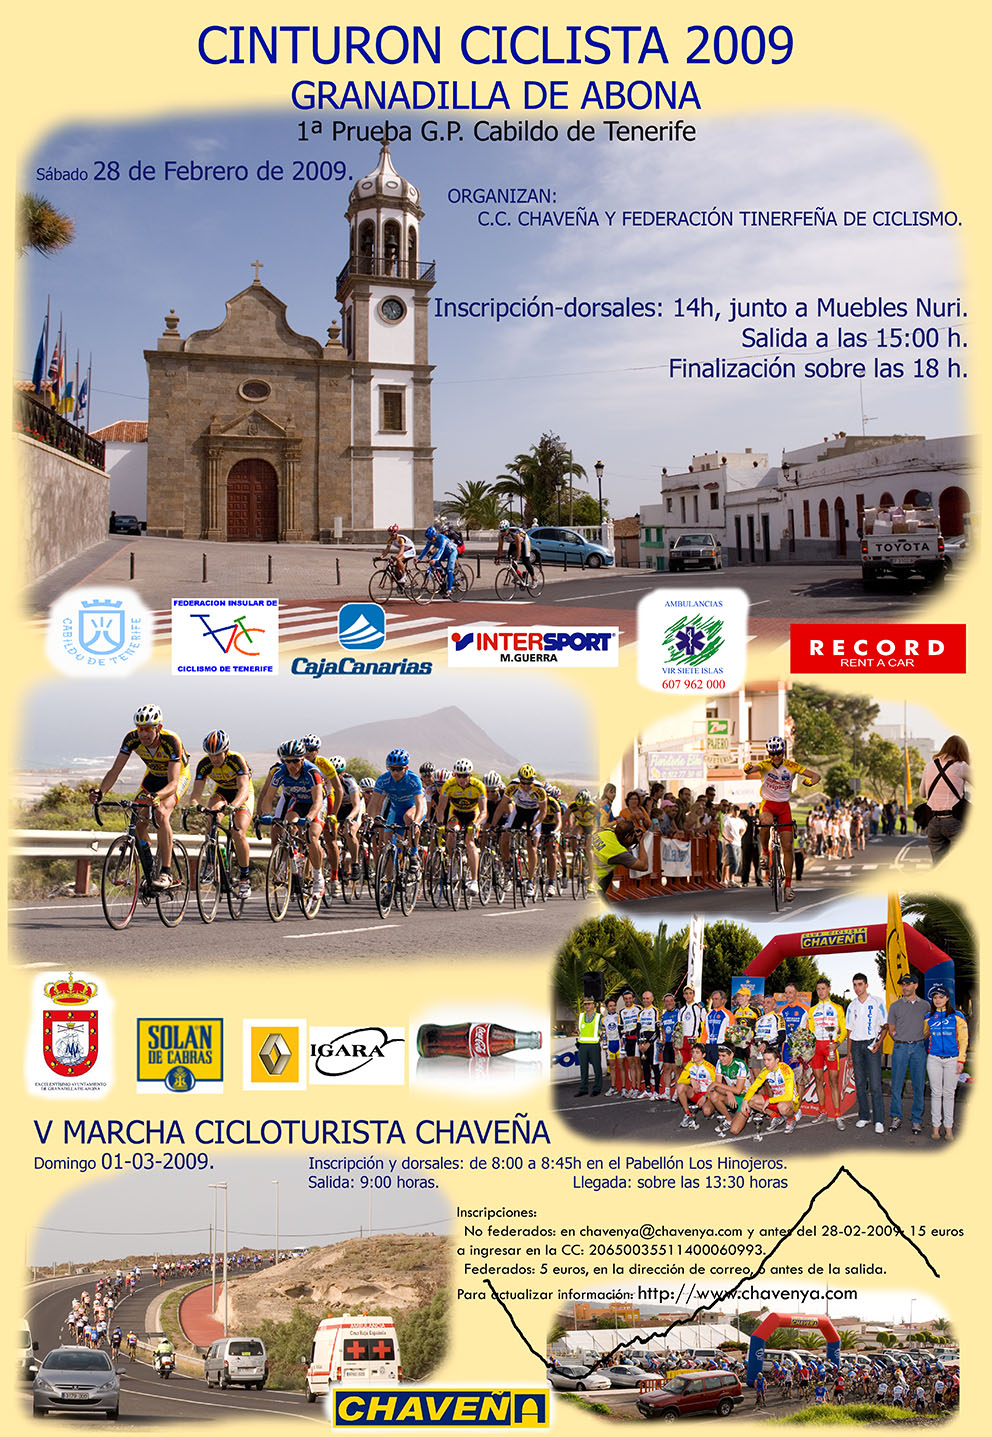 Muebles Nuri Granadilla - Otros A Os Club Ciclista Chave A[mjhdah]https://chavenya.files.wordpress.com/2011/02/cartelweb-2011.jpg